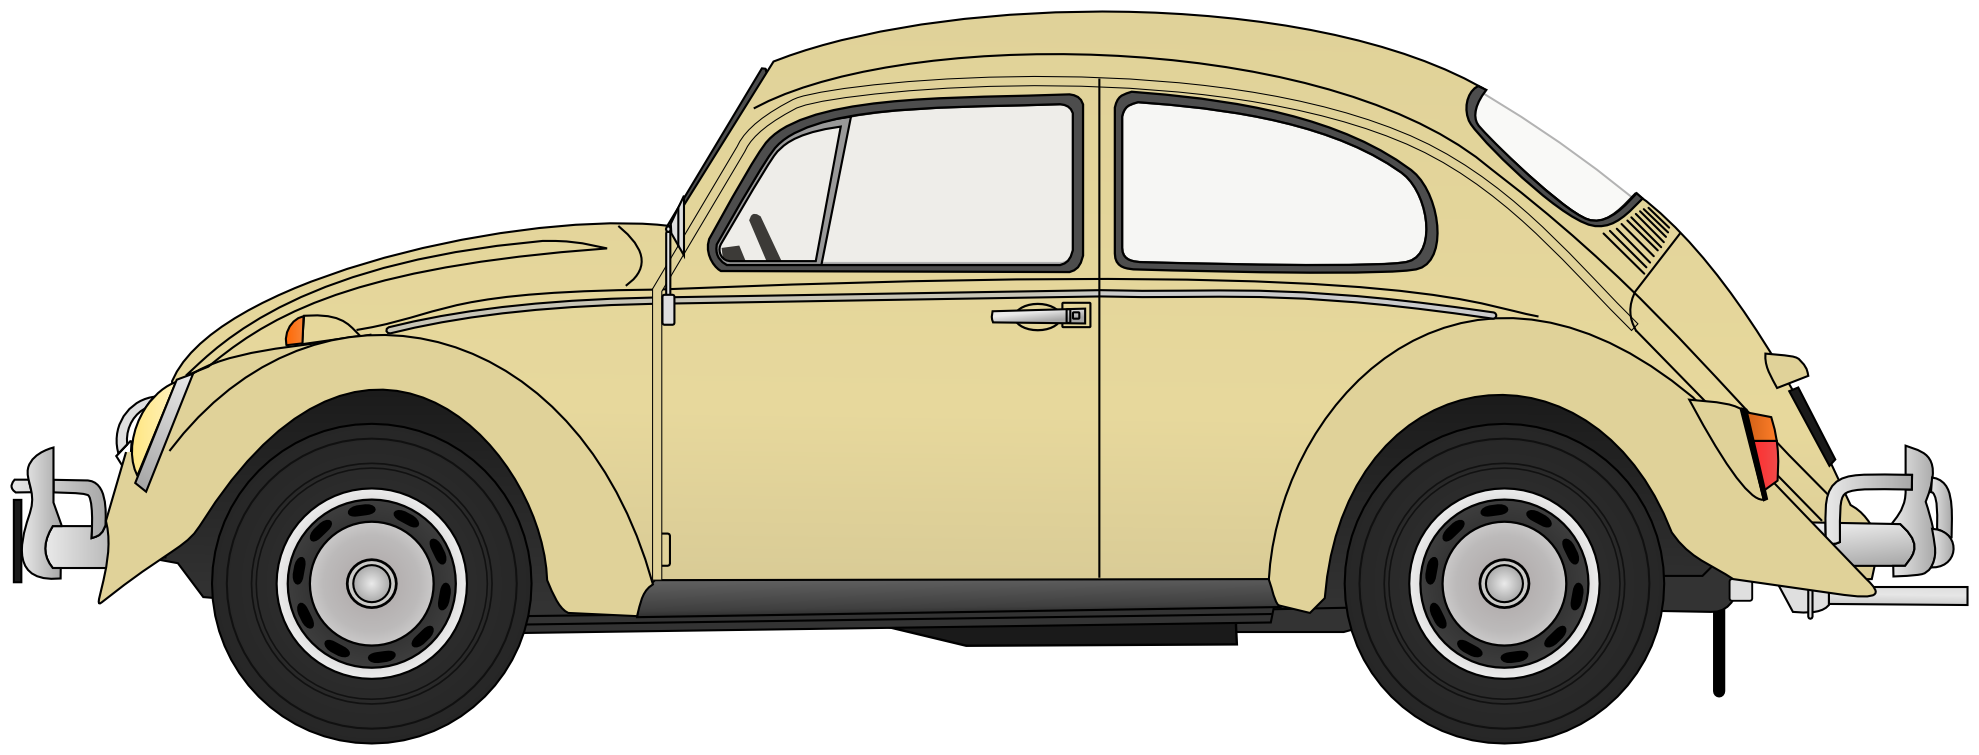 vw beetle clipart clipart suggest Cartoon VW Bug vw bug clipart free